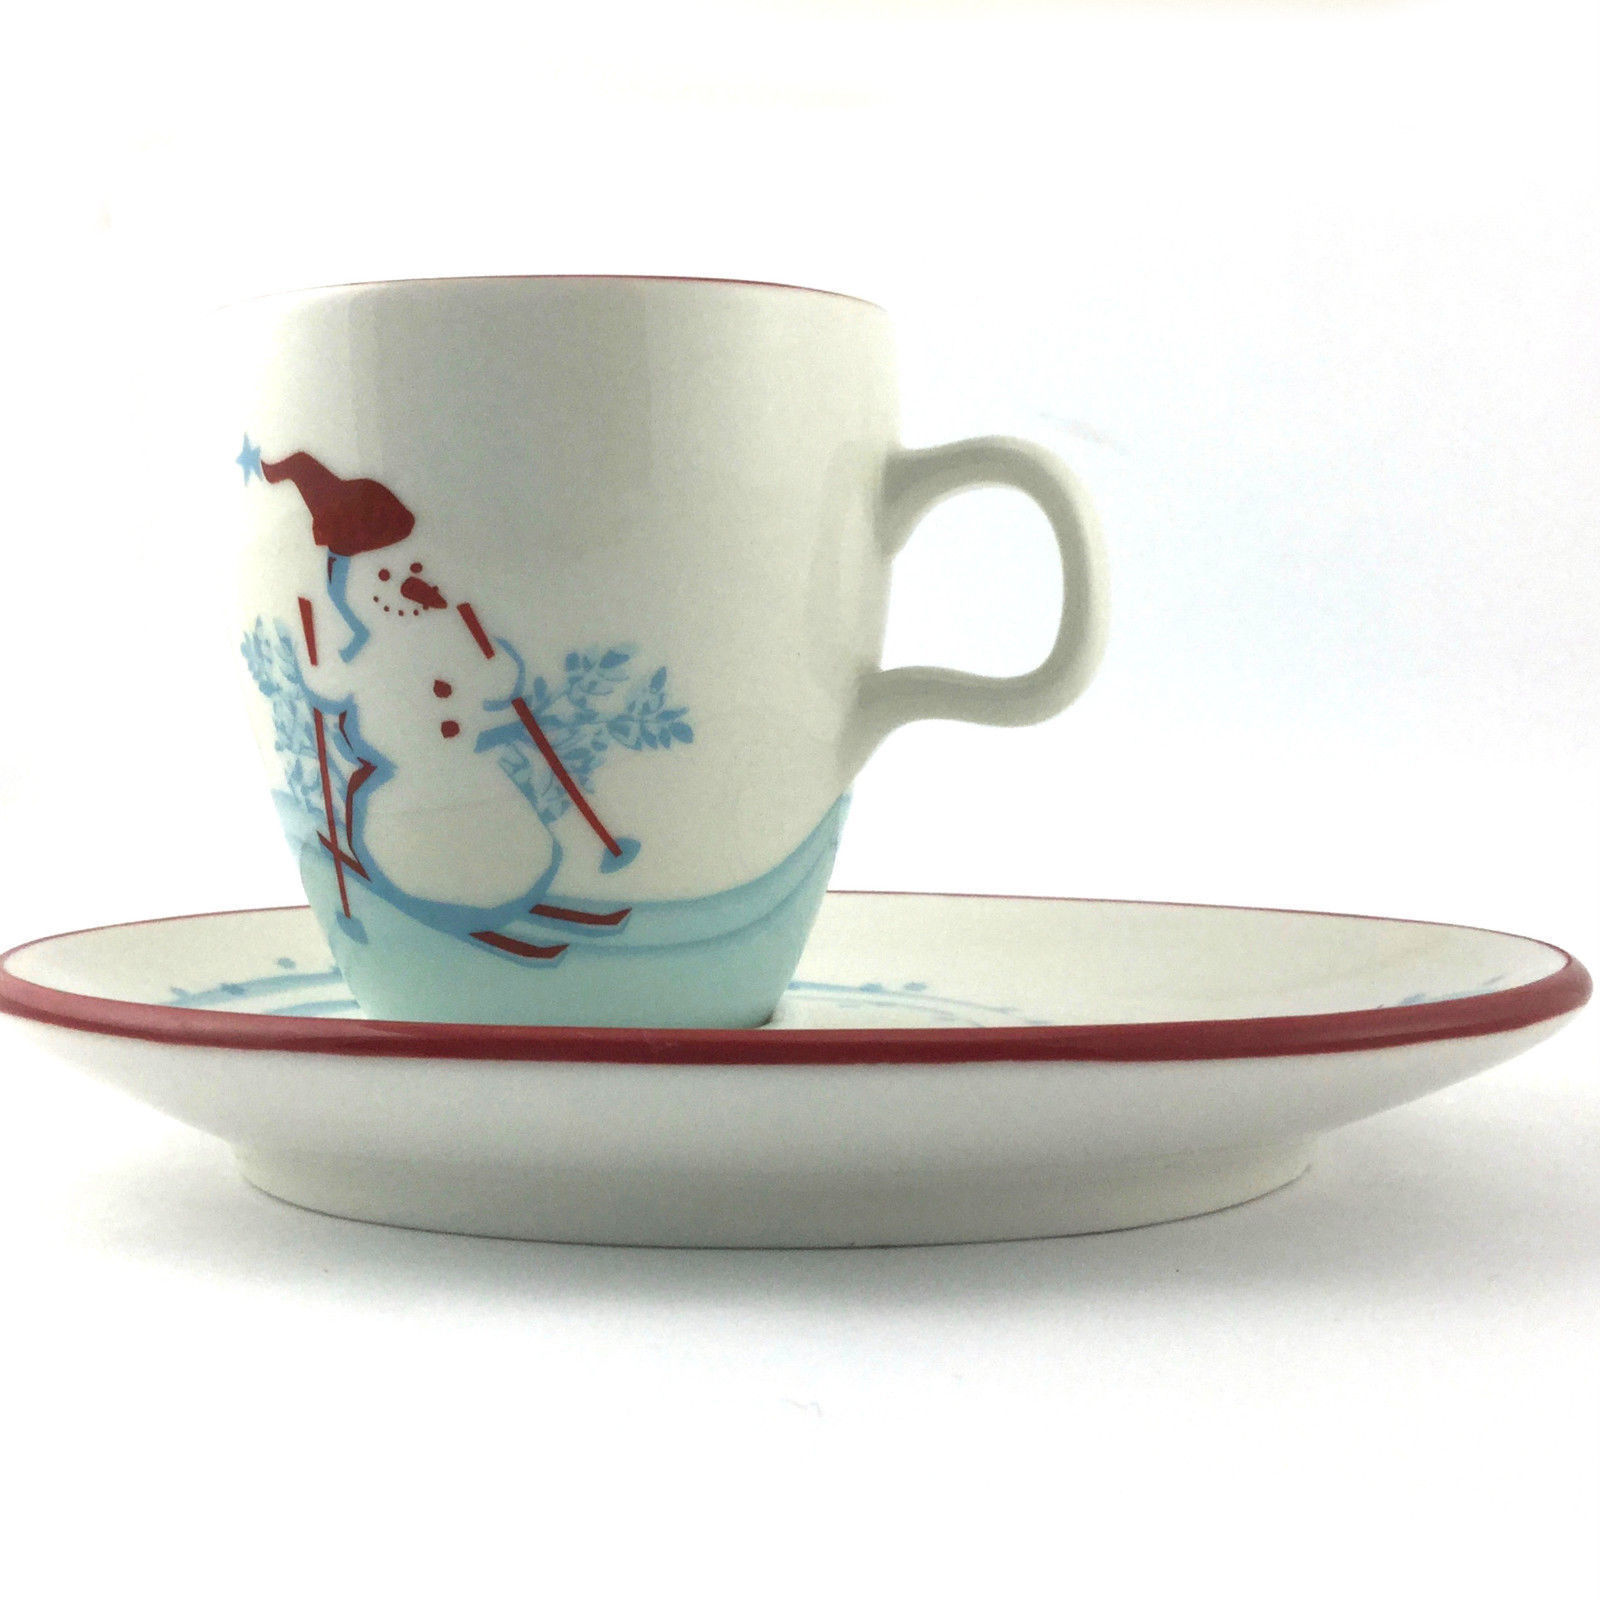 Starbucks Collectible 2007 Holiday Mug With Snack Plate Saucer Snowman Penguin